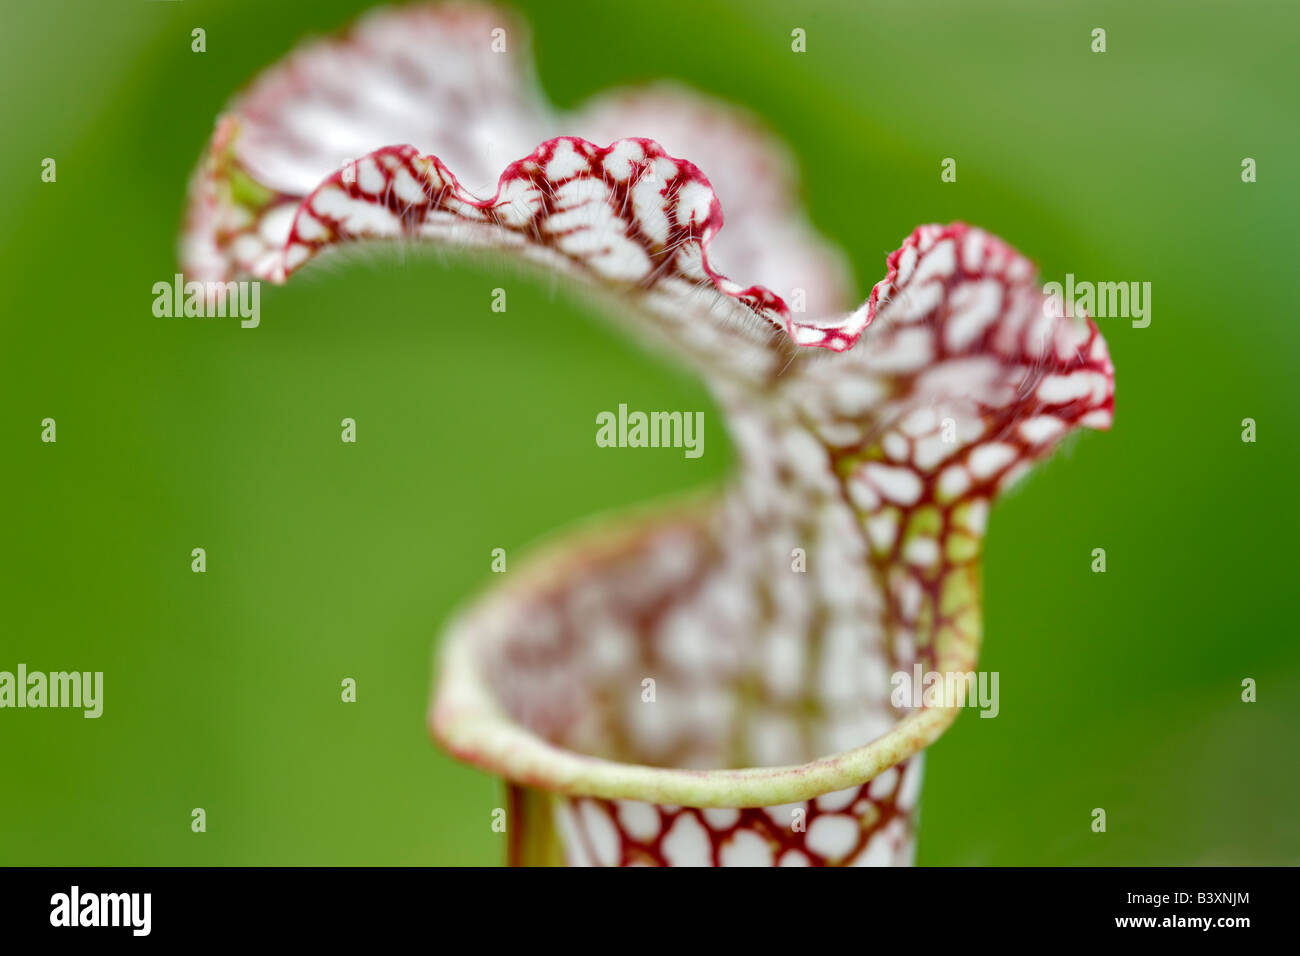 Pitcher plant close up Hughes Water Gardens Oregon - Stock Image